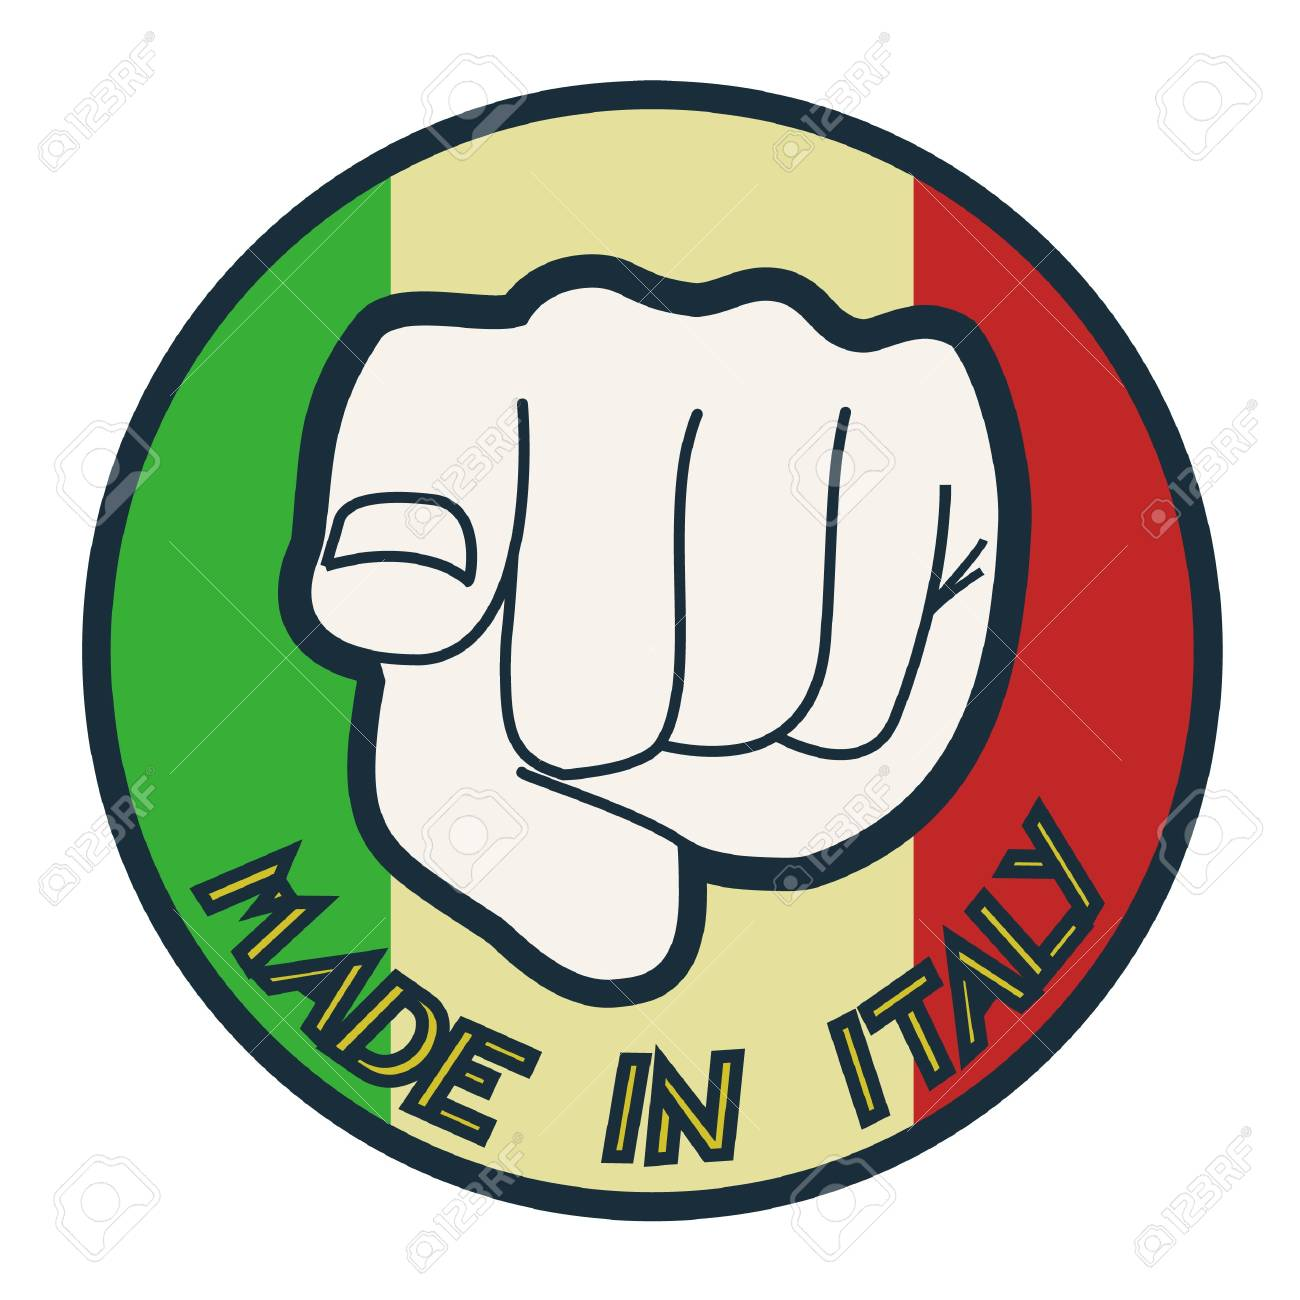 Made in Italy Stock Vector - 11955988